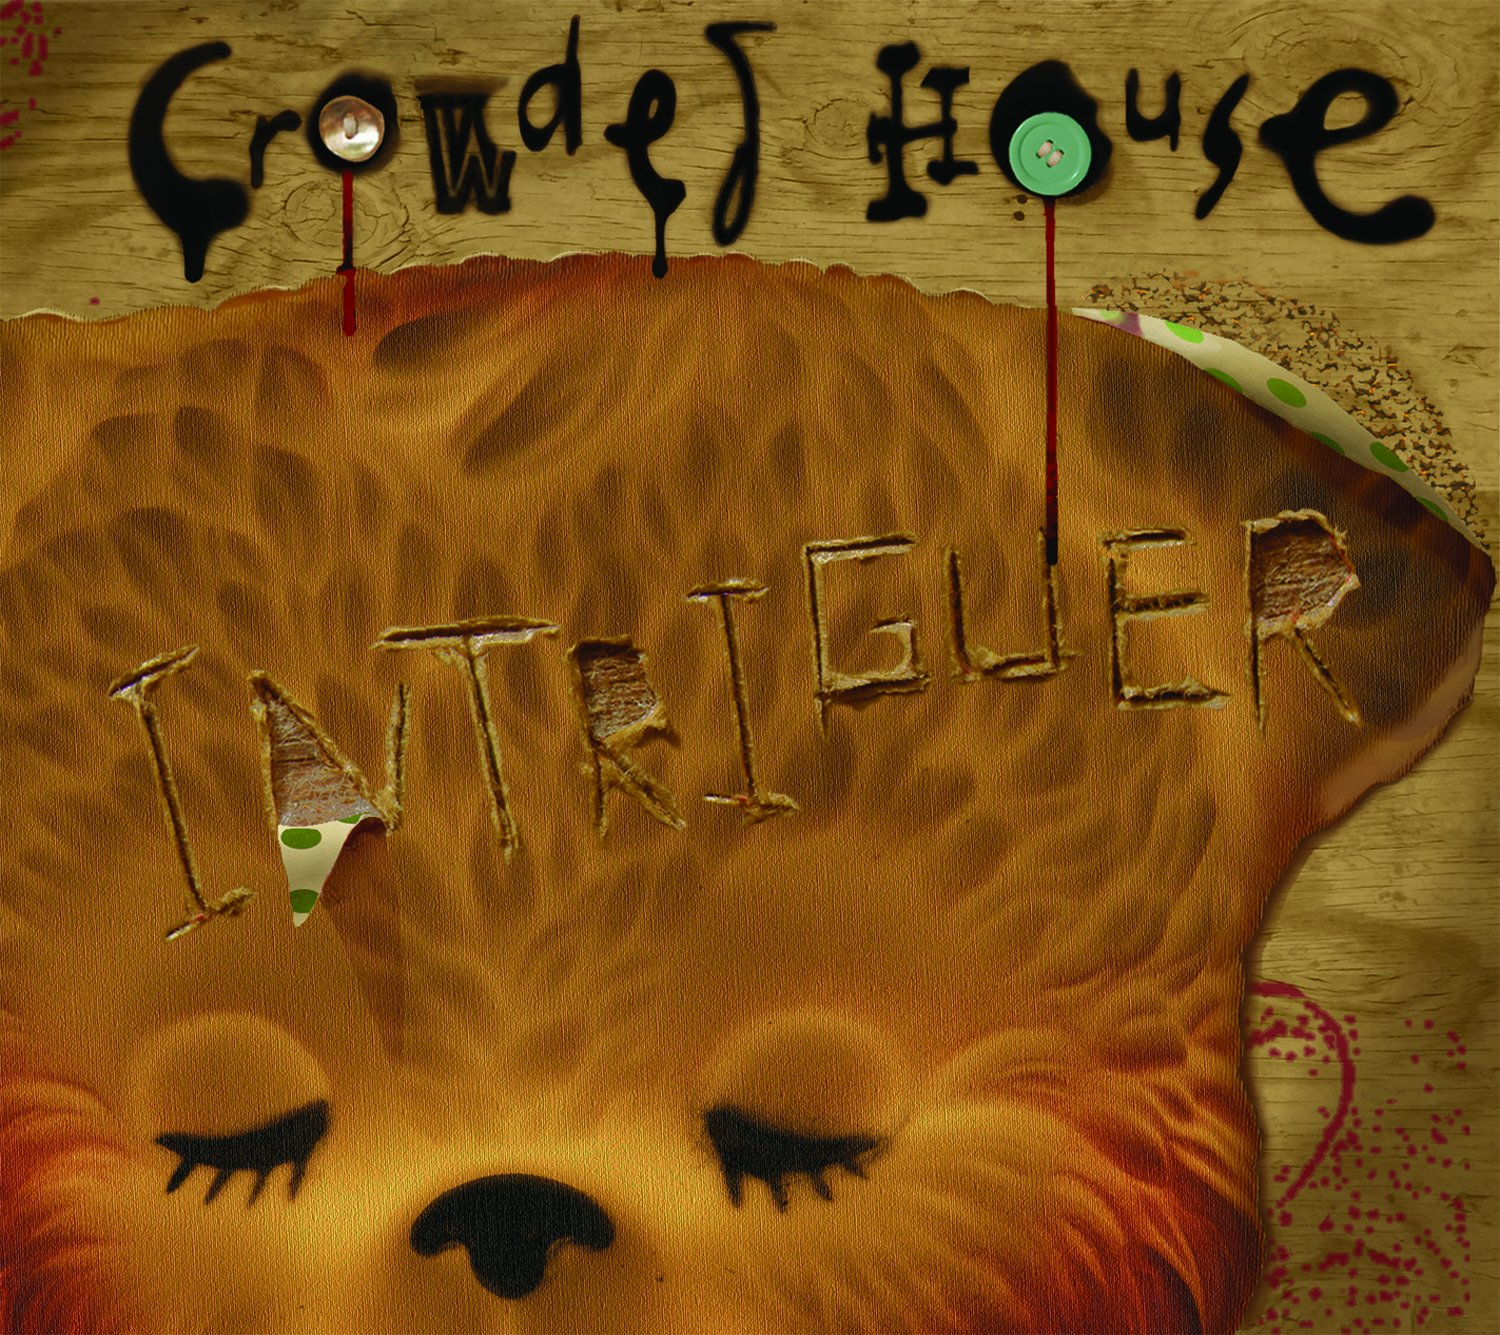 CROWDED HOUSE - Intriguer - Amazon.com Music